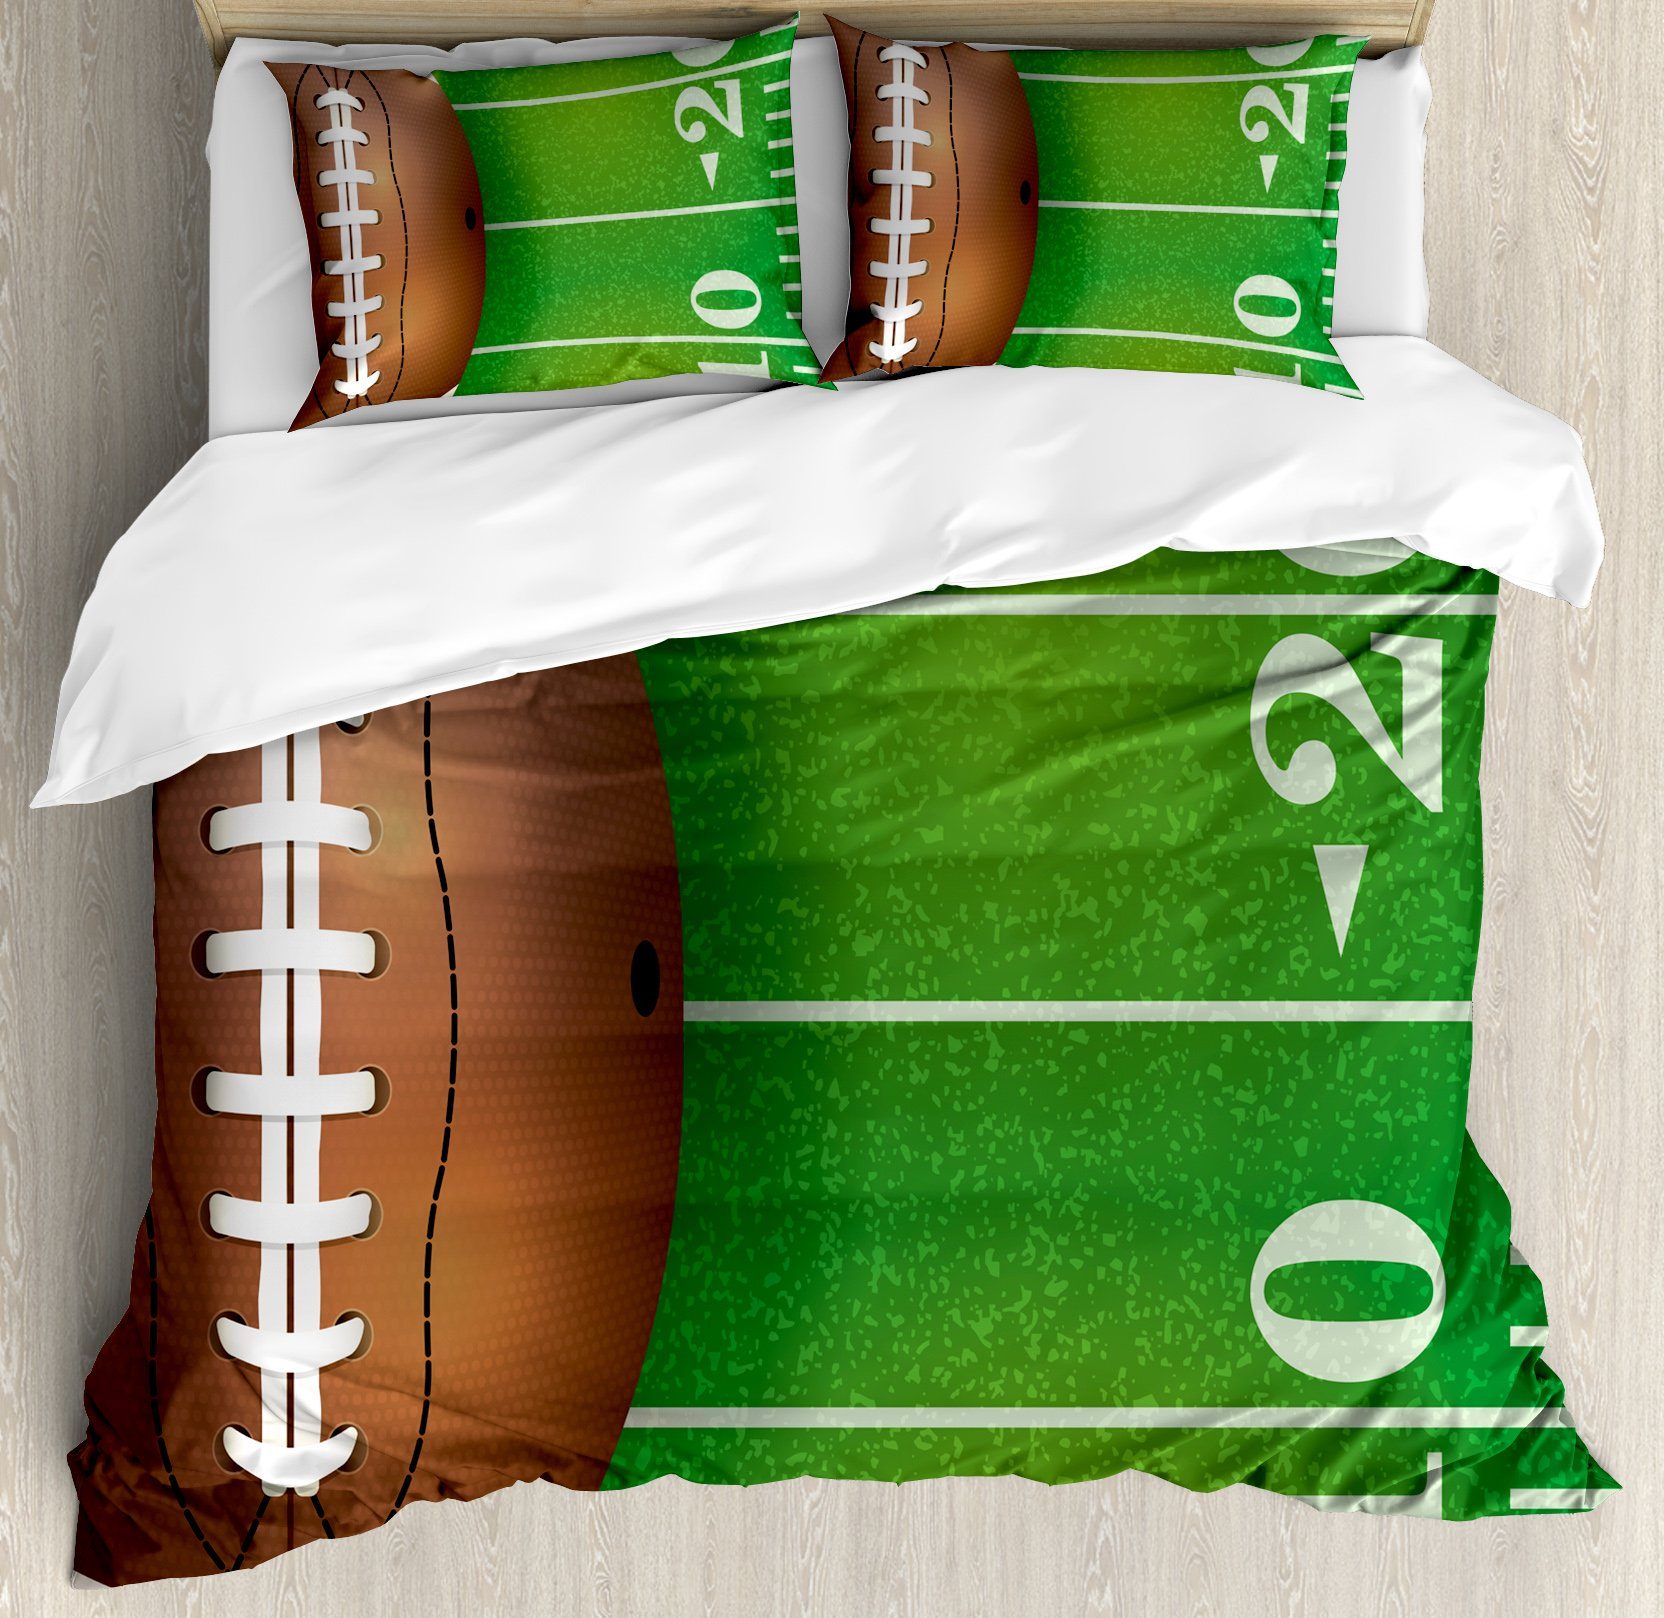 Boy's Room Duvet Cover Set Queen Size by Lunarable, American Football Field and Ball Realistic Vivid Illustration College, Decorative 3 Piece Bedding Set with 2 Pillow Shams, Green Brown White